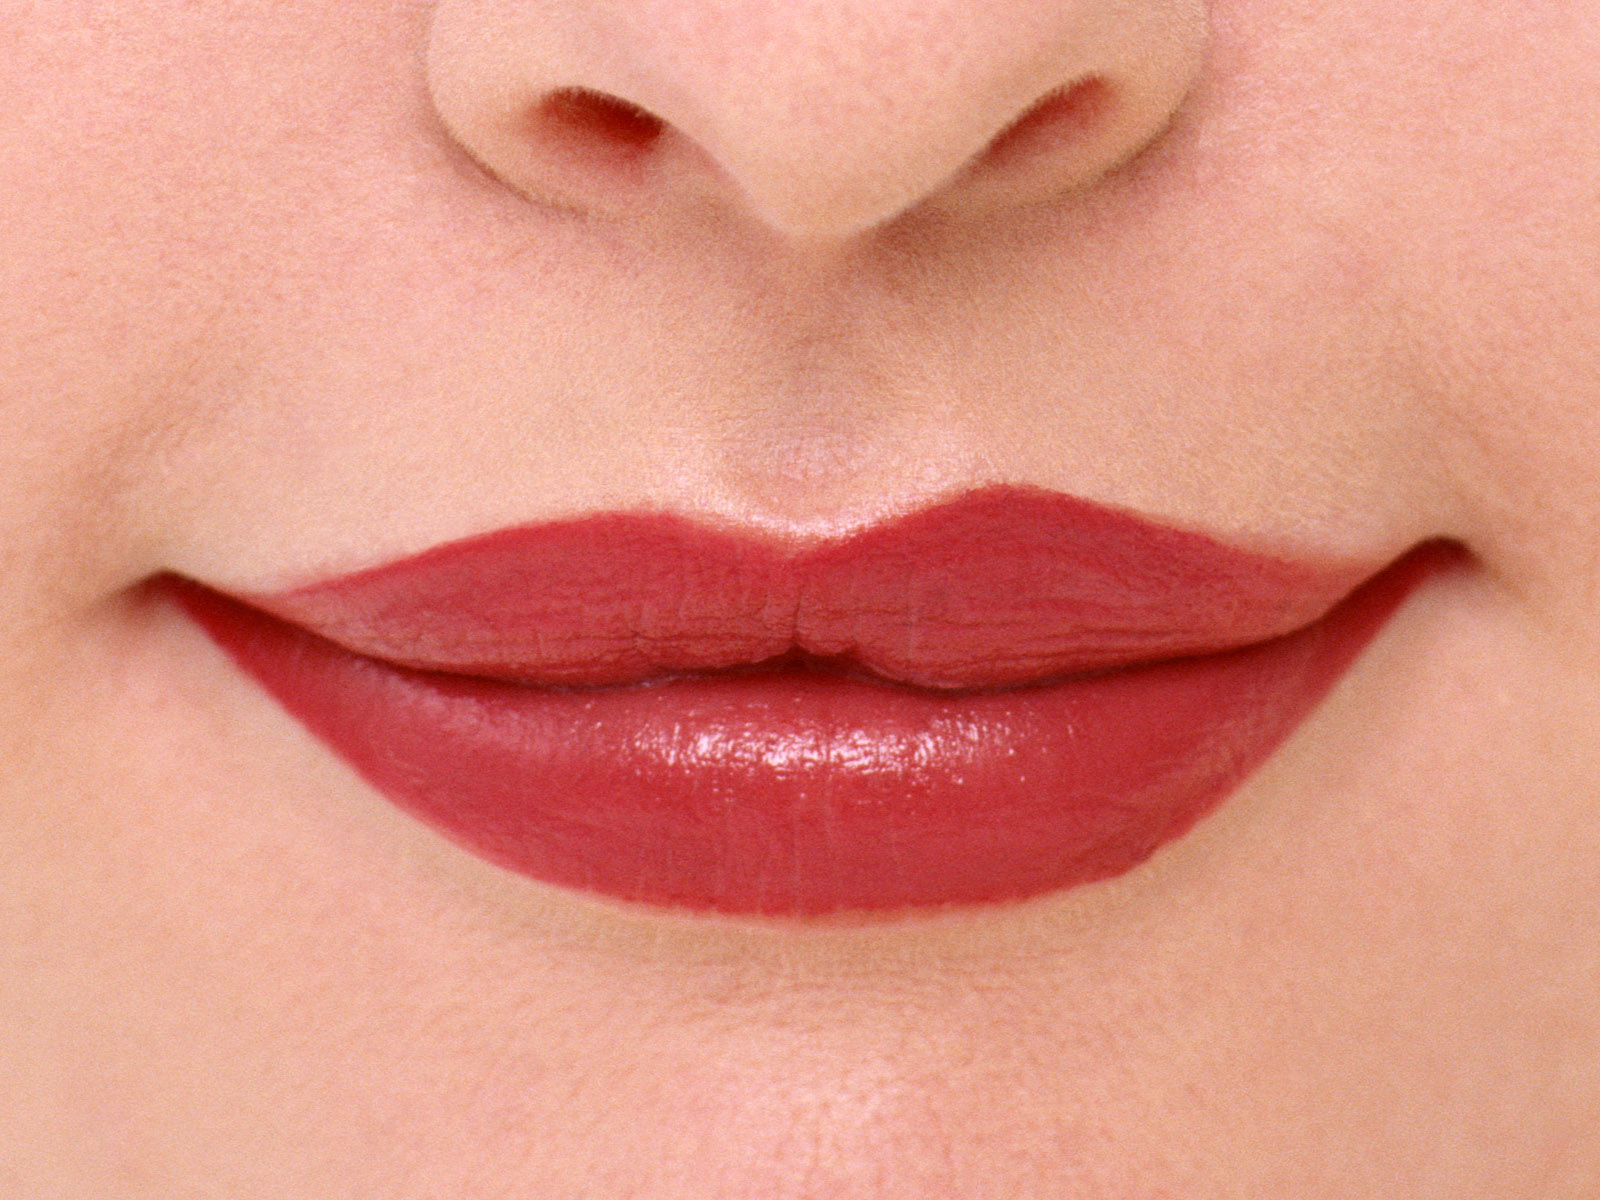 Female lips album 2167